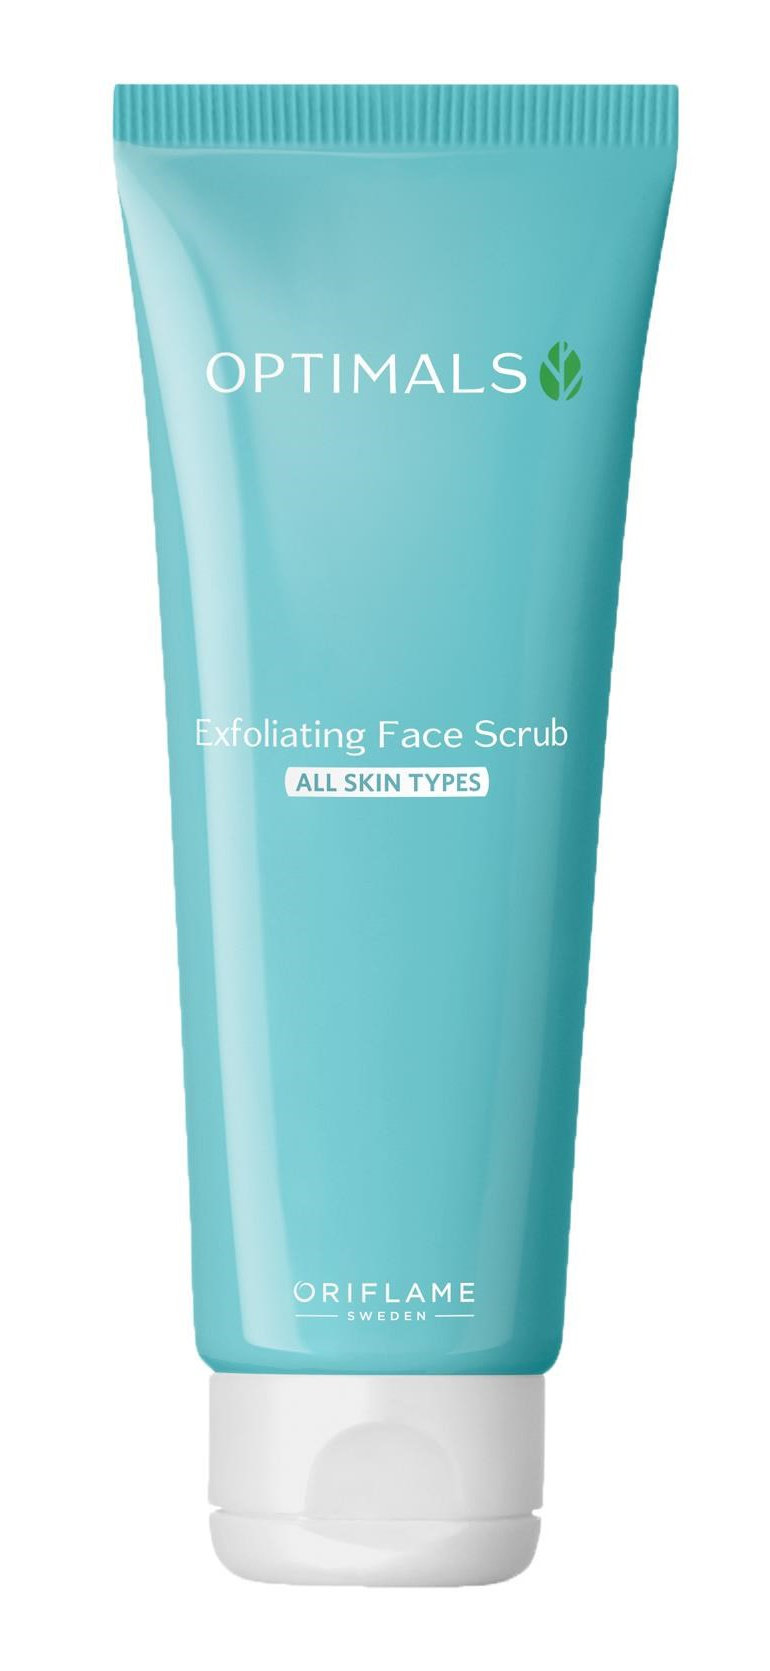 Oriflame Optimals Exfoliating Face Scrub